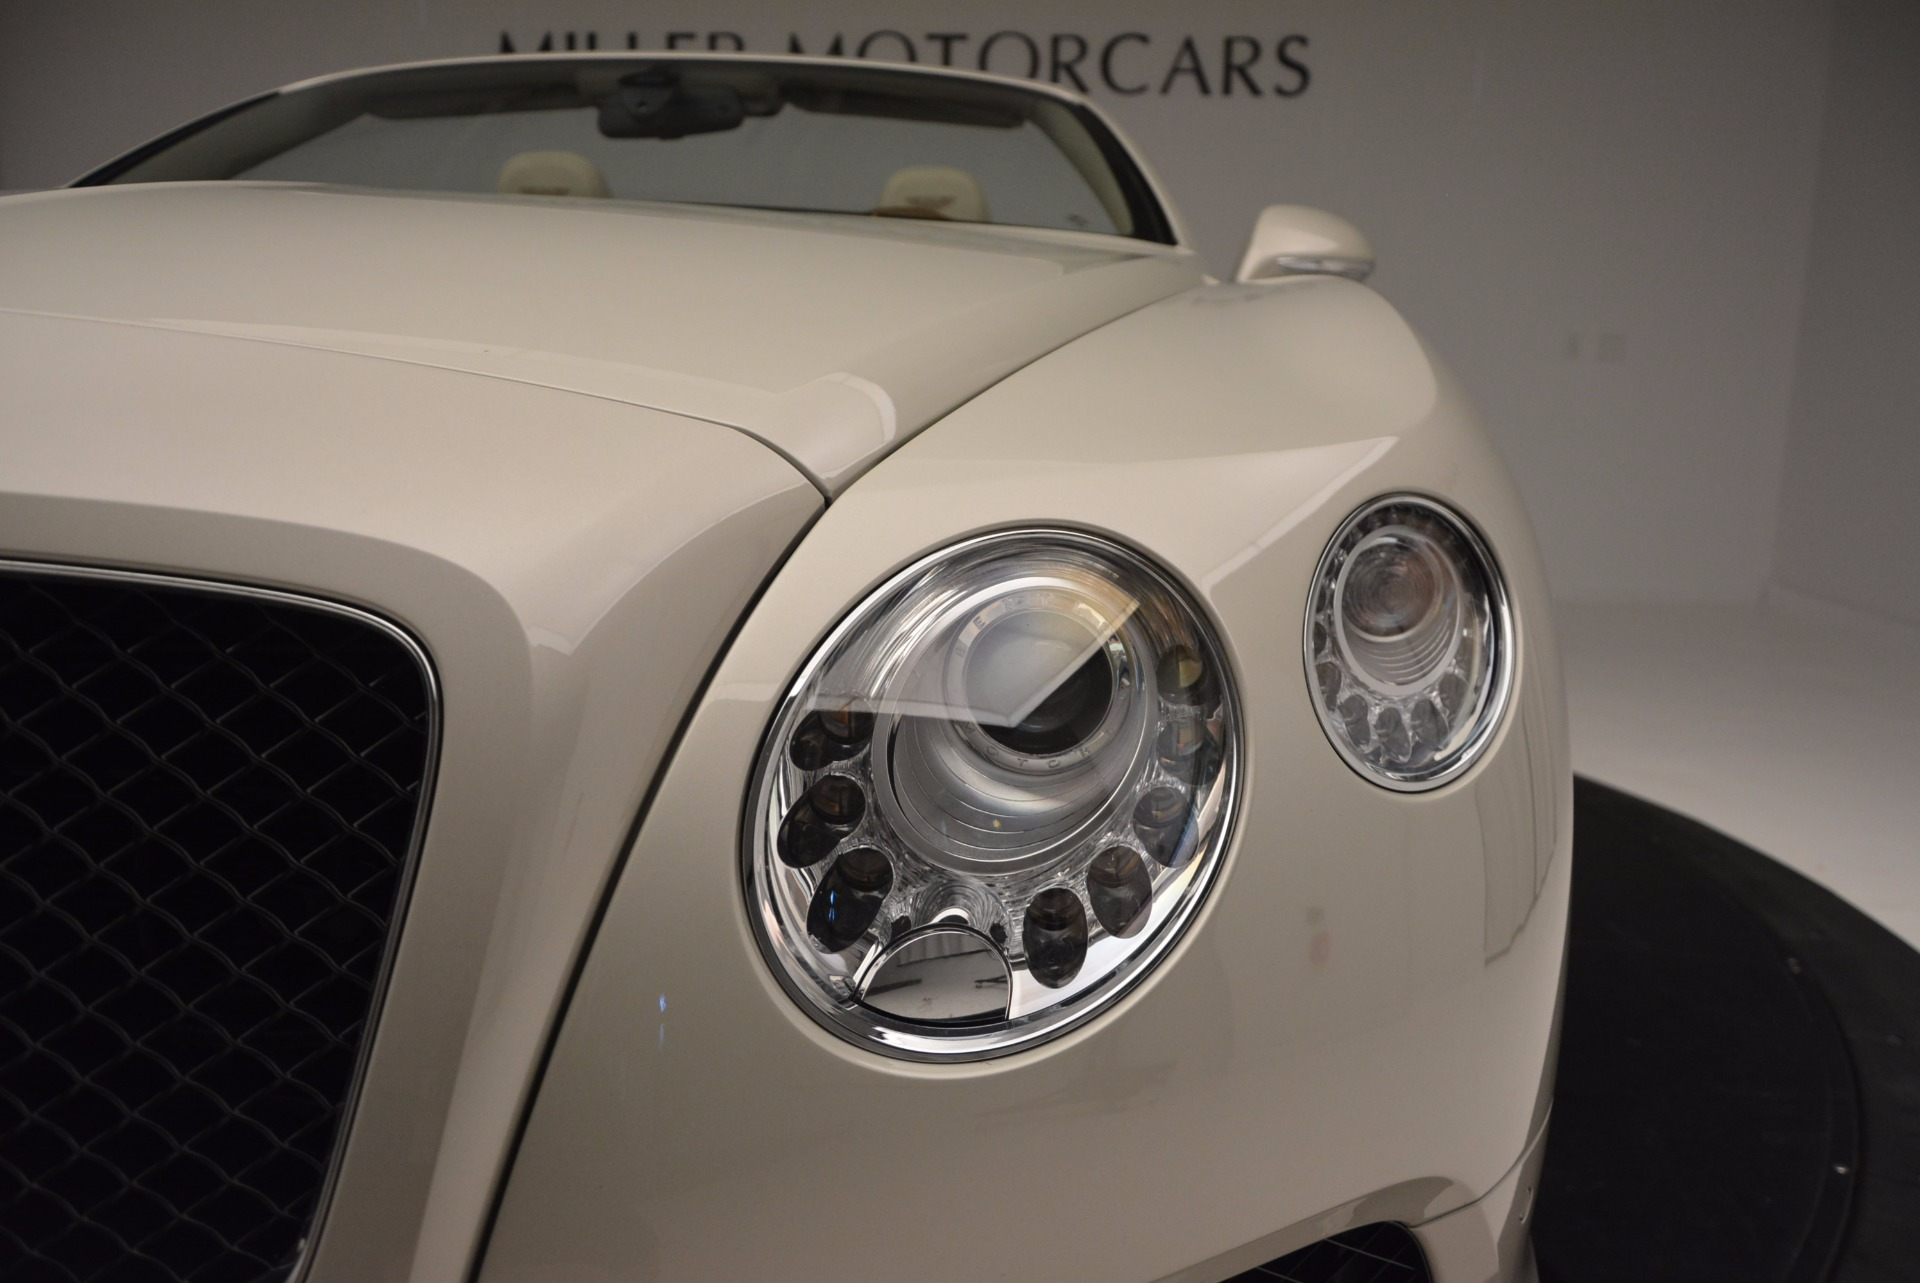 Used 2013 Bentley Continental GTC V8  For Sale In Greenwich, CT. Alfa Romeo of Greenwich, 7108 675_p27